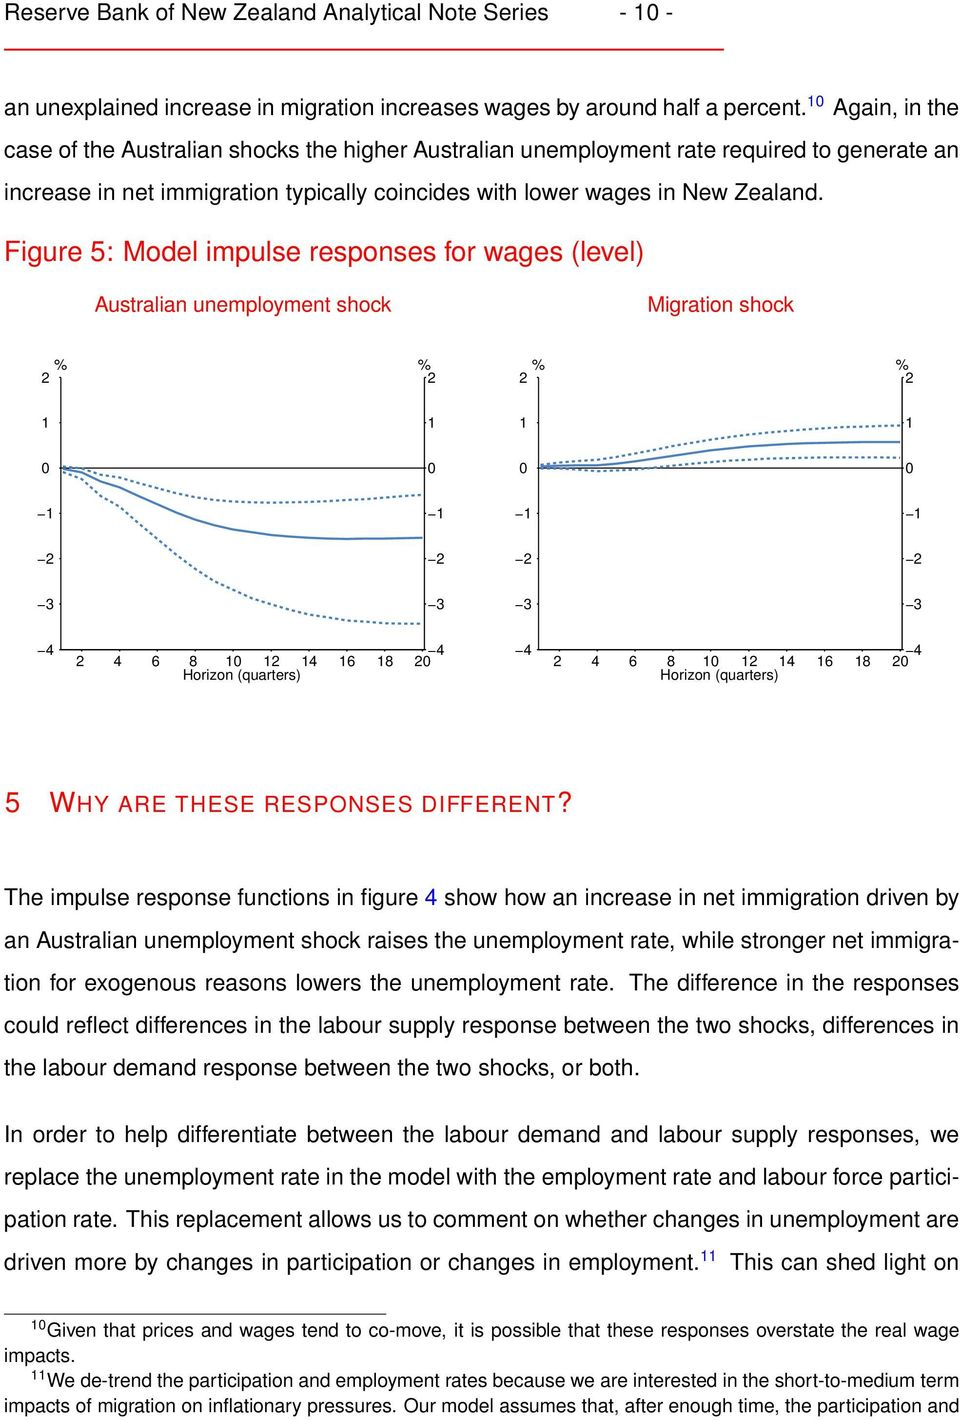 Figure 5: Model impulse responses for wages (level) Australian unemployment shock Migration shock % % 2 2 % % 2 2 2 2 2 2 3 3 3 3 4 4 2 4 6 8 2 4 6 8 2 4 4 2 4 6 8 2 4 6 8 2 5 WHY ARE THESE RESPONSES